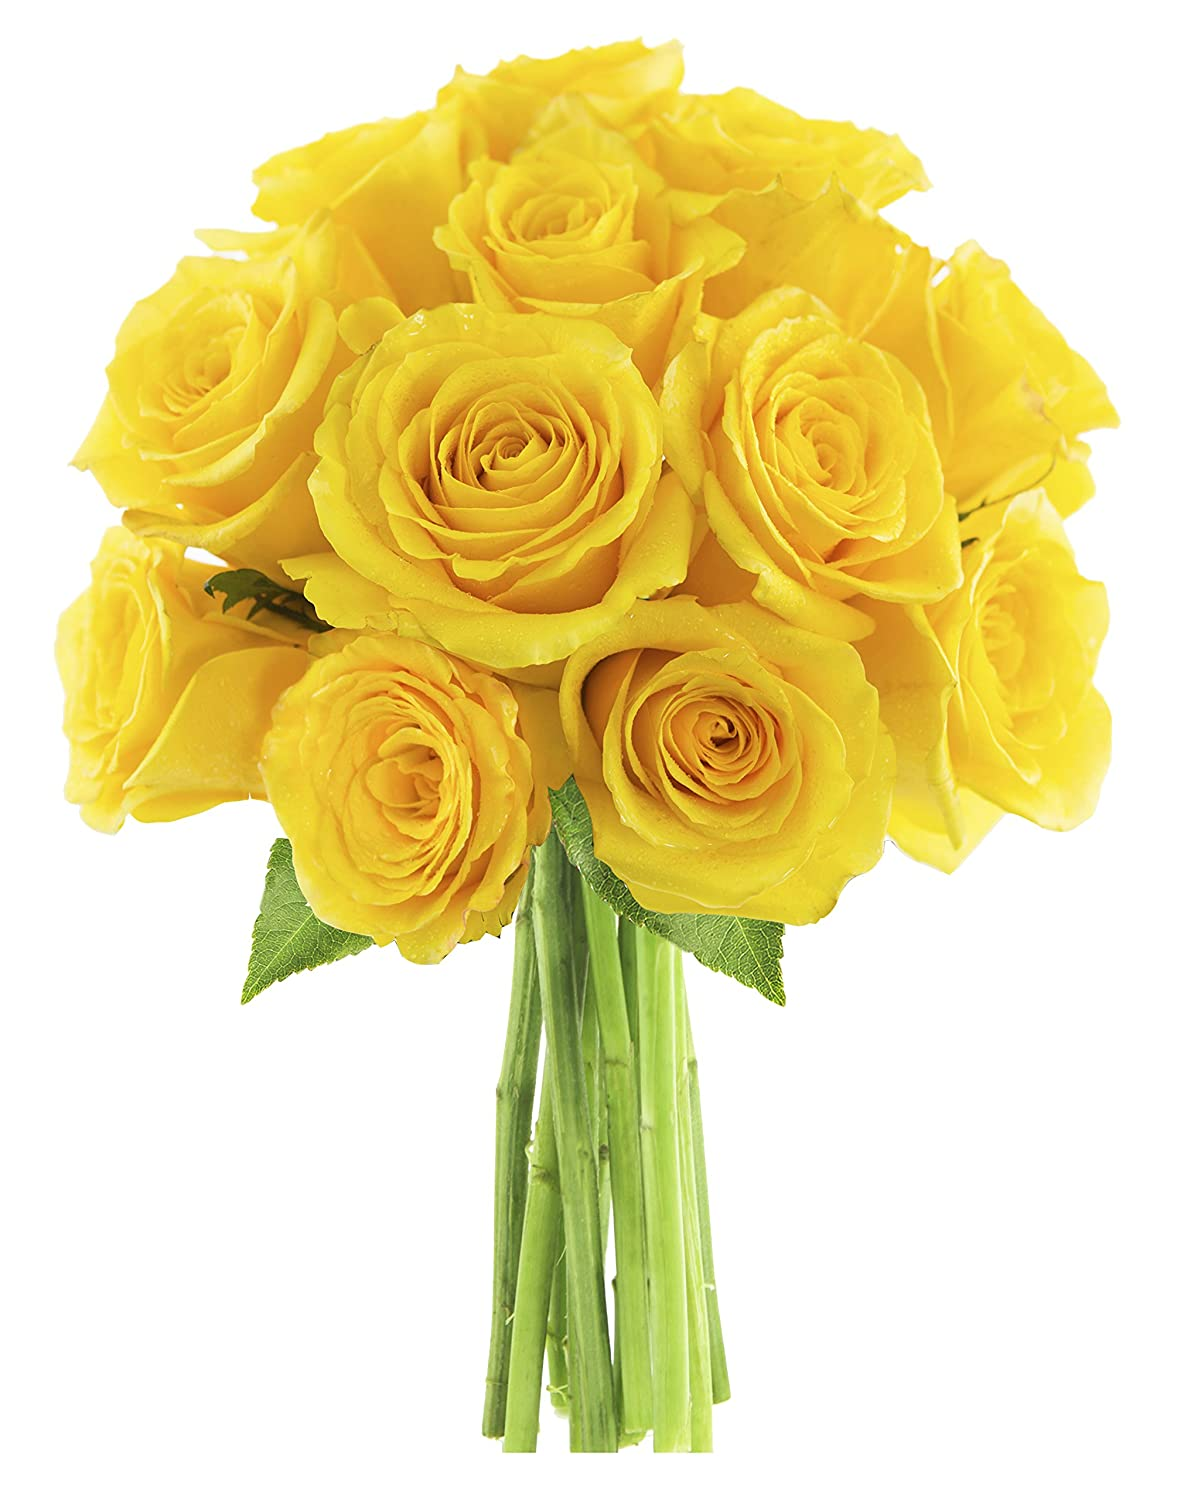 Kabloom One Dozen You Had Me at Hello Yellow Roses without Vase, 2.5 Pound